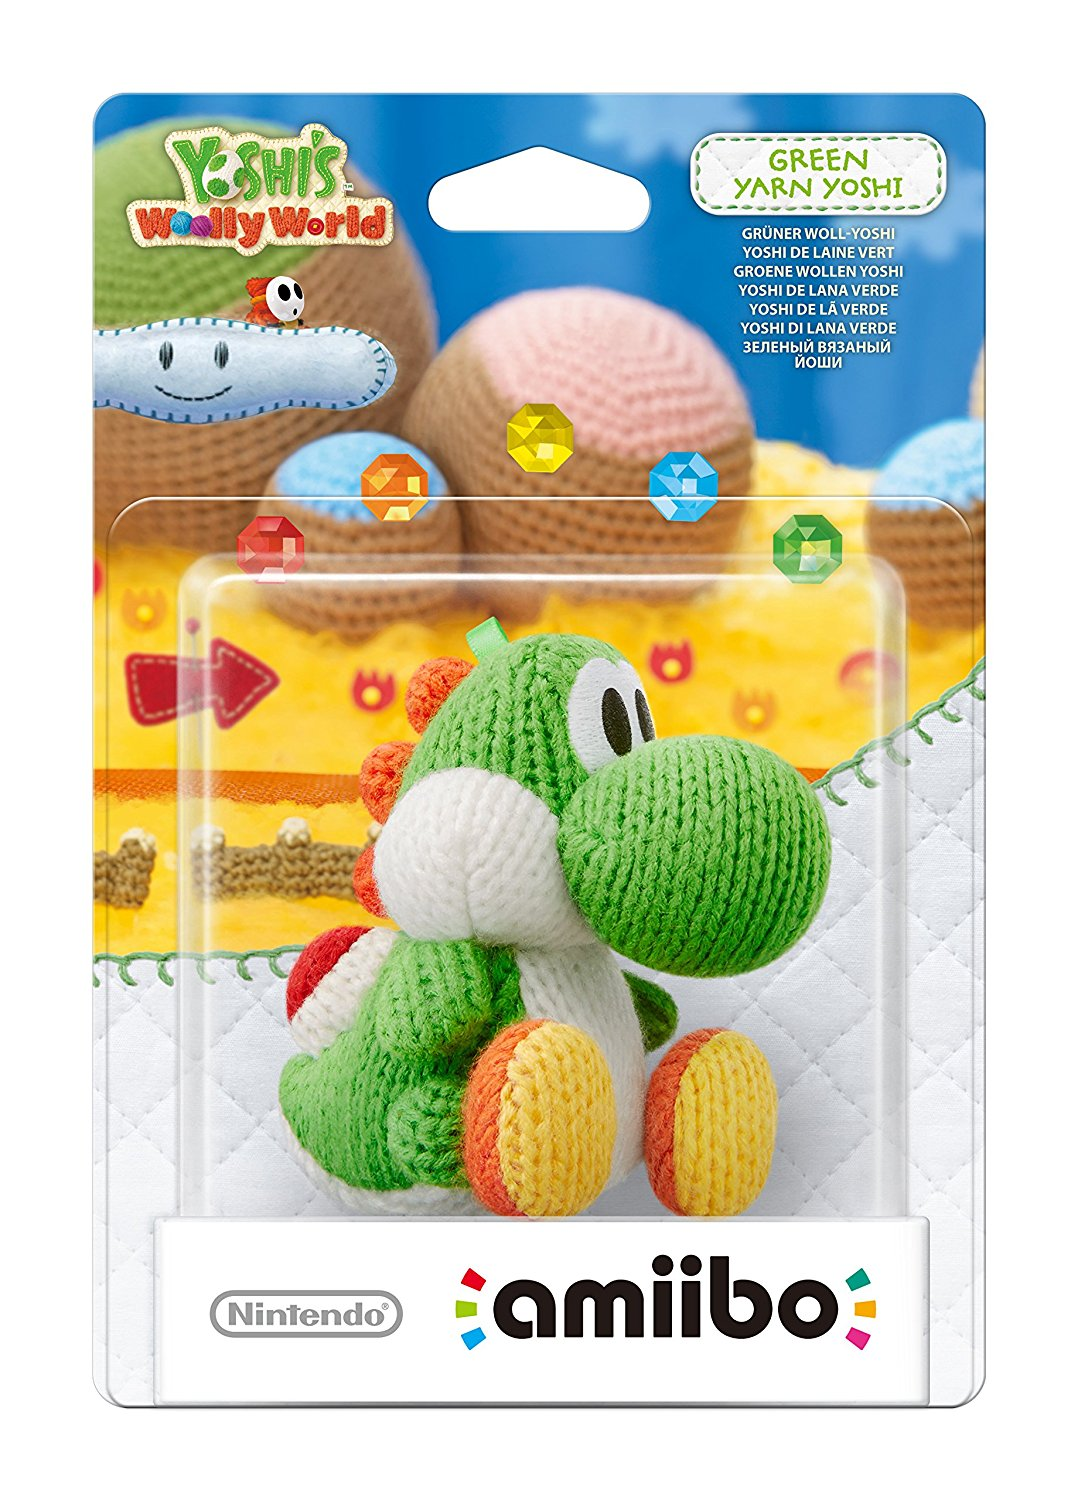 Yoshis Woolly World Amiibo